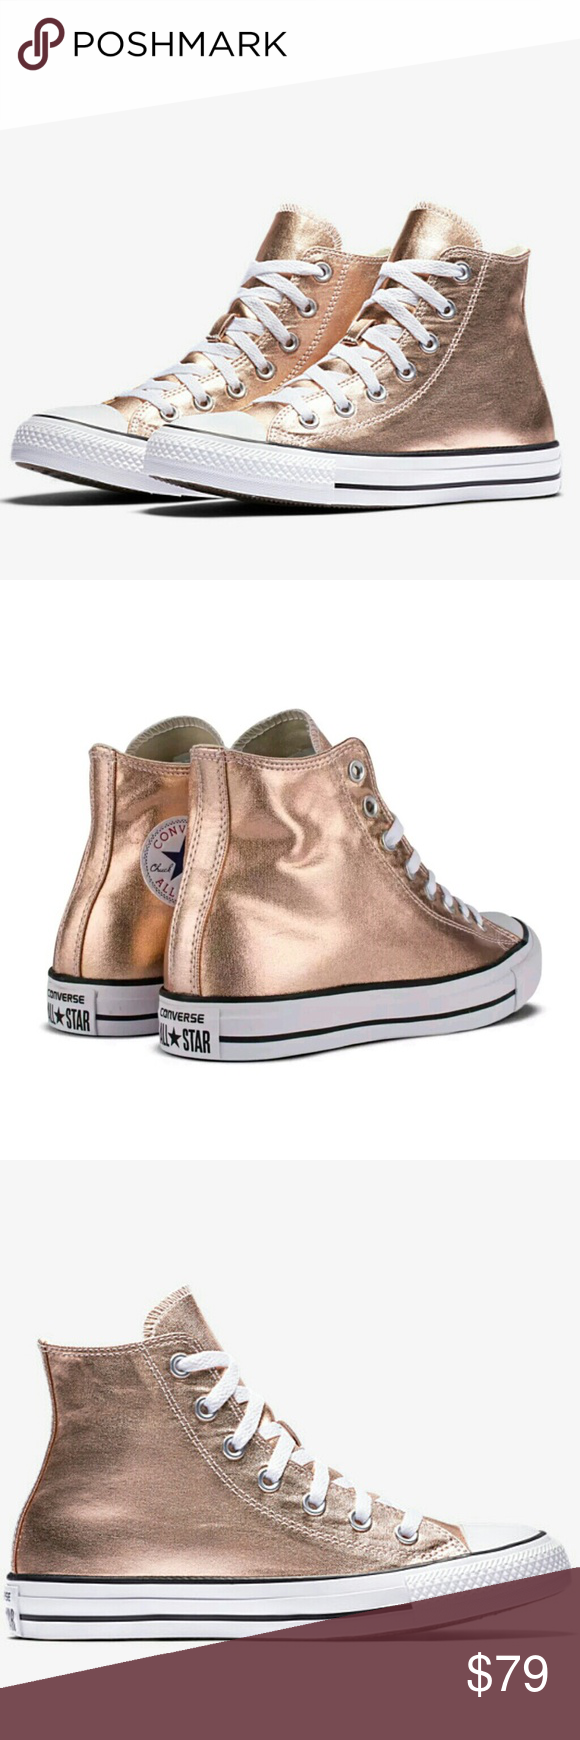 22497f49a07fdd NWT Converse Chuck Taylor Metallic Rose Gold High - Brand New! - Sexy Rose  Gold High Top! - Size  Women s listed 💕The Classic Converse Chuck Taylor  All ...